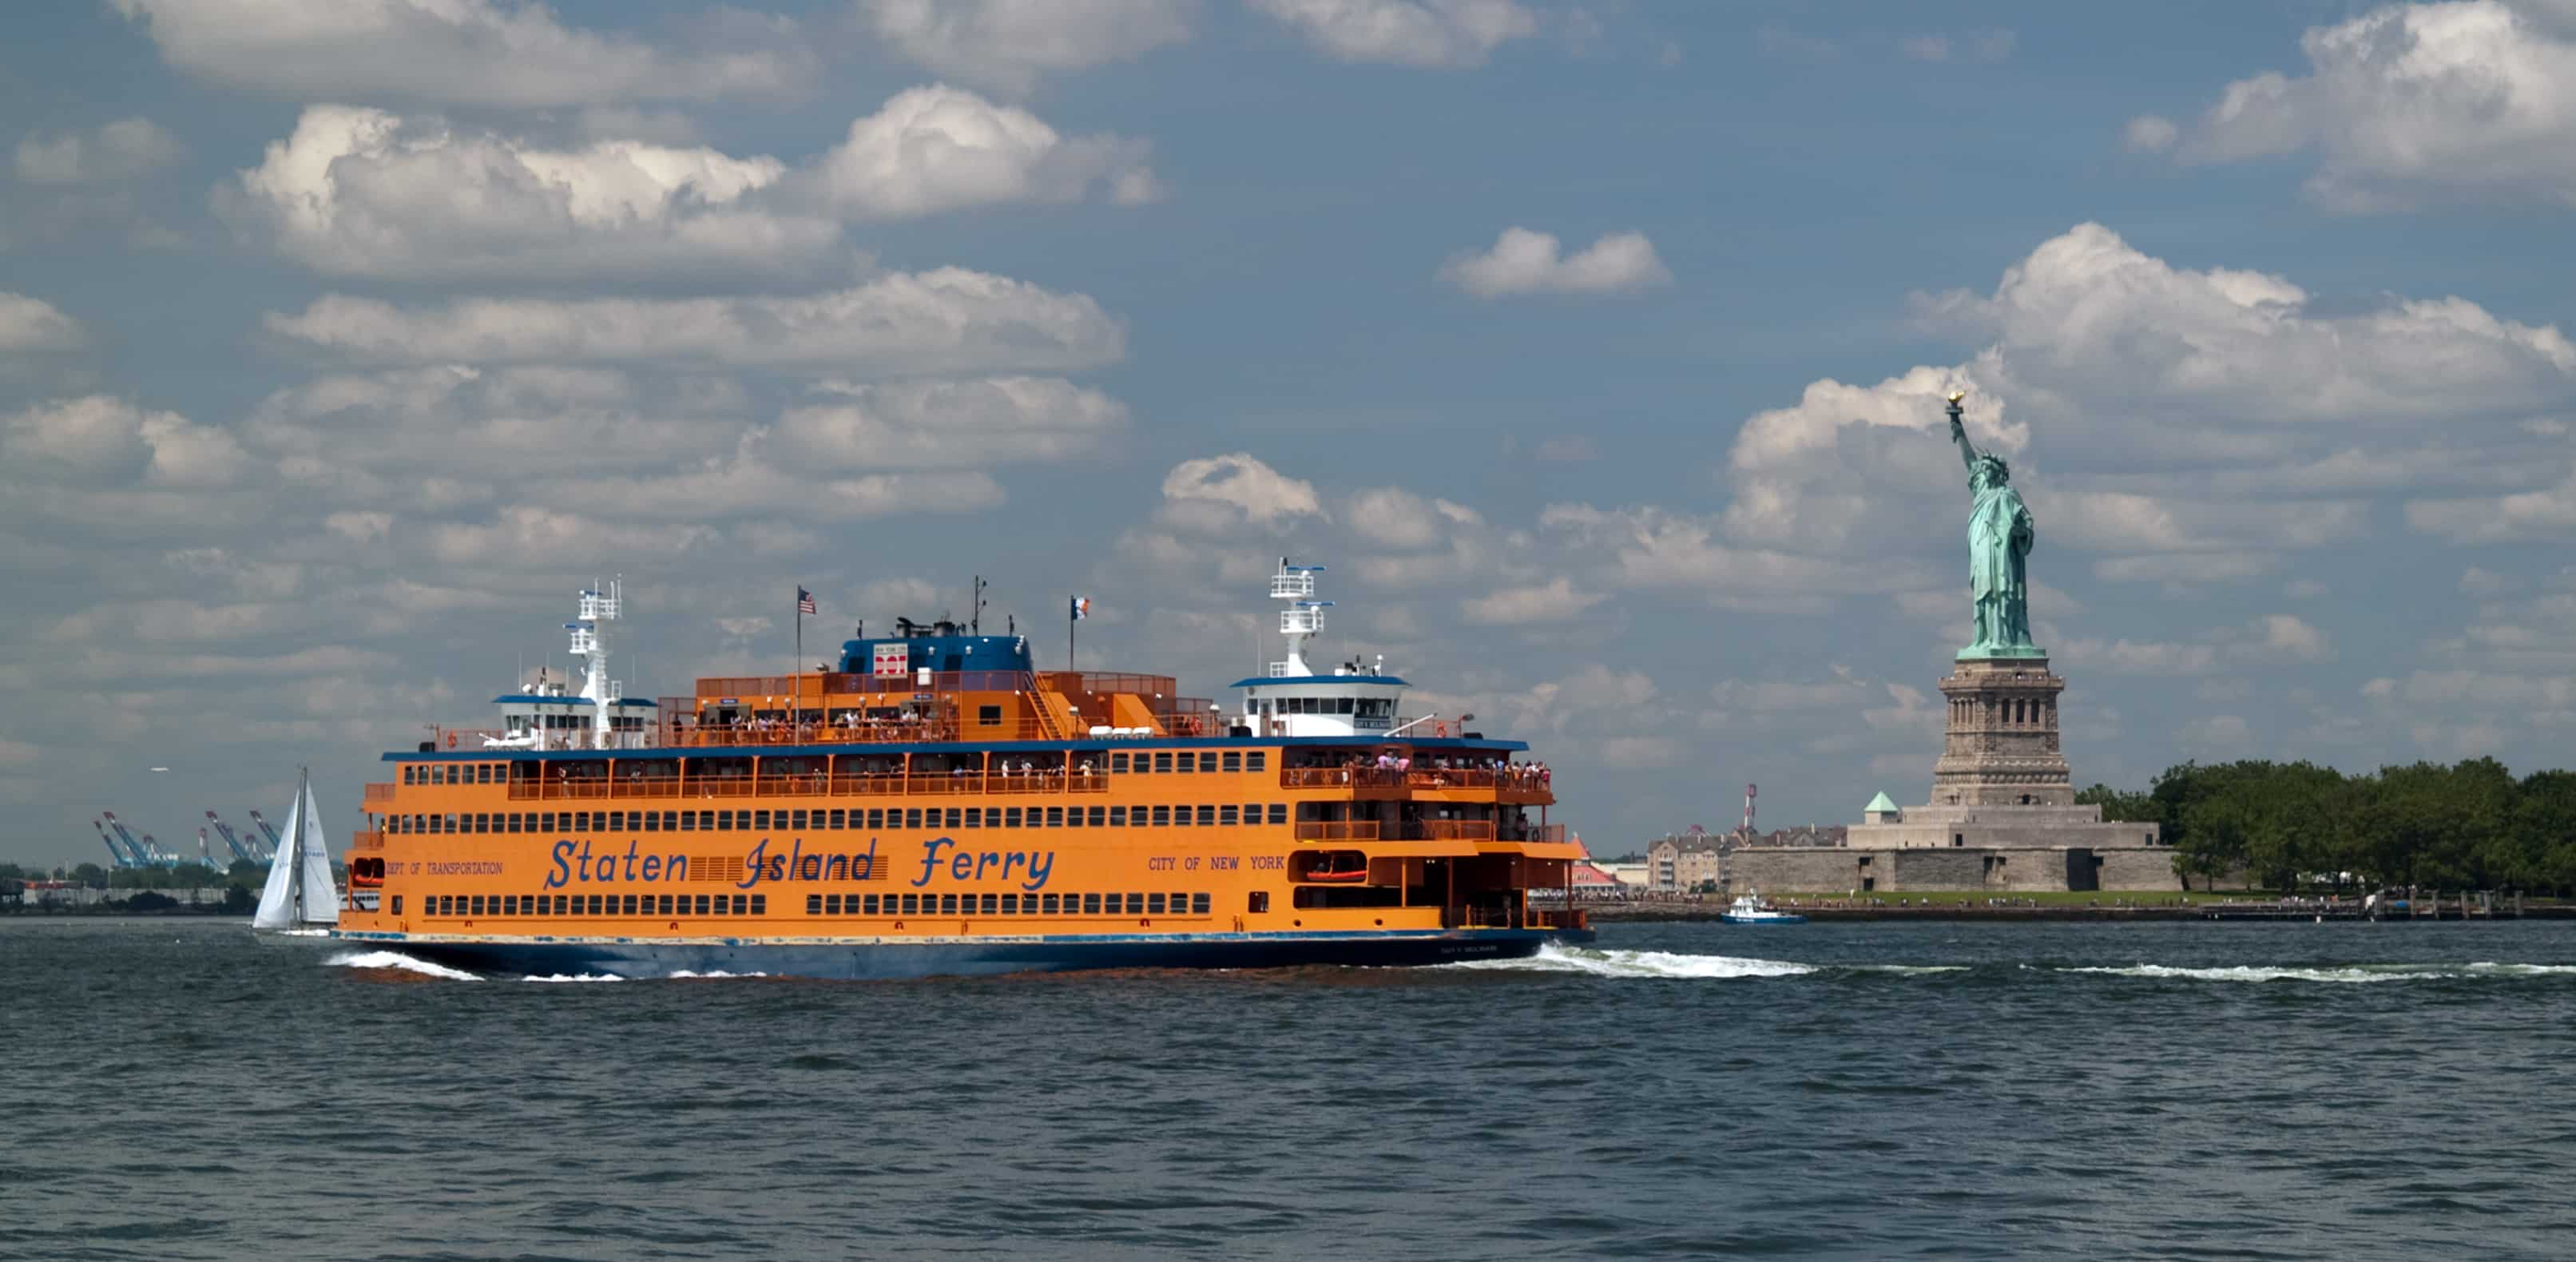 Staten Island ferry passes the Statue of Liberty